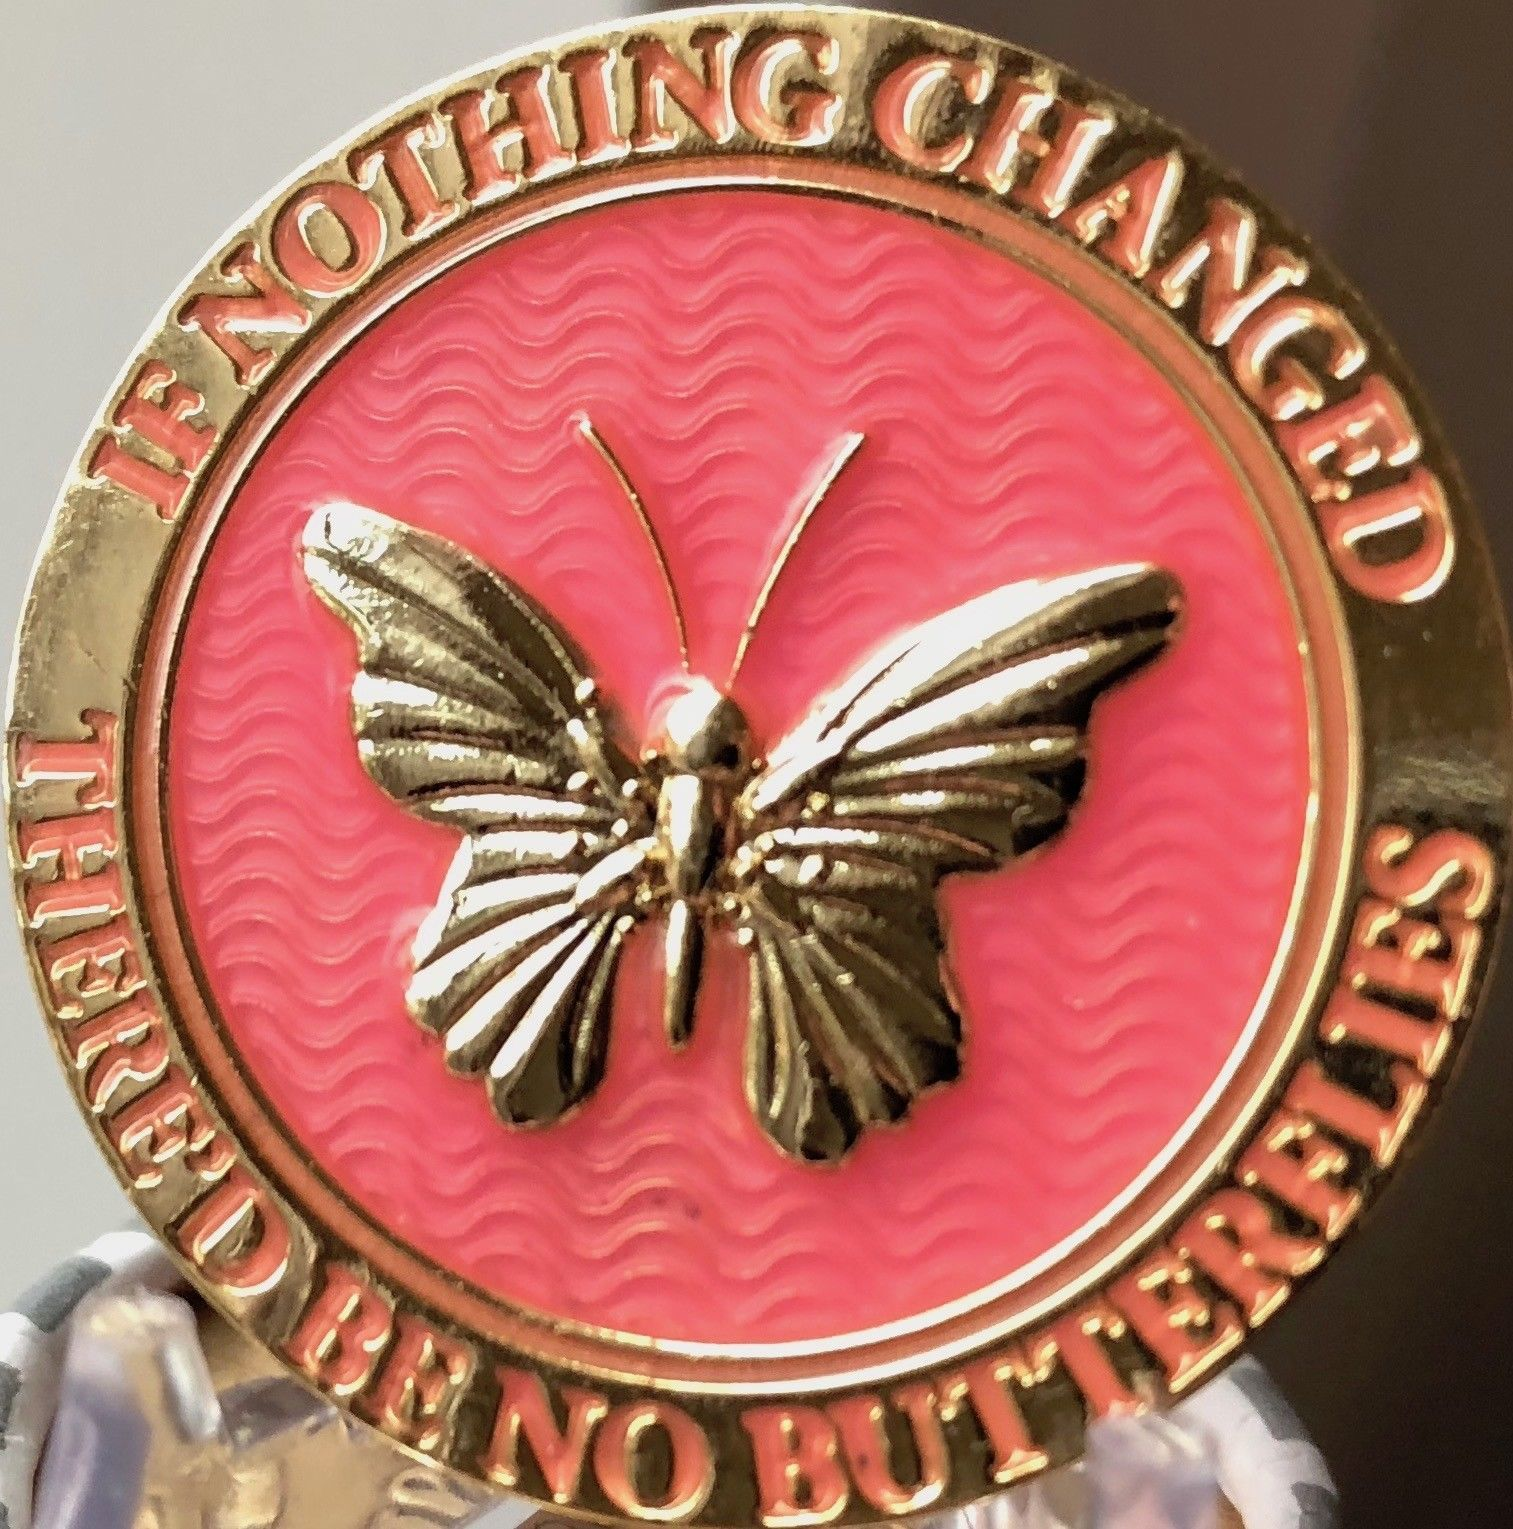 If Nothing Changed There'd Be No Butterflies Reflex Pink Gold Plated Medallion - $17.99